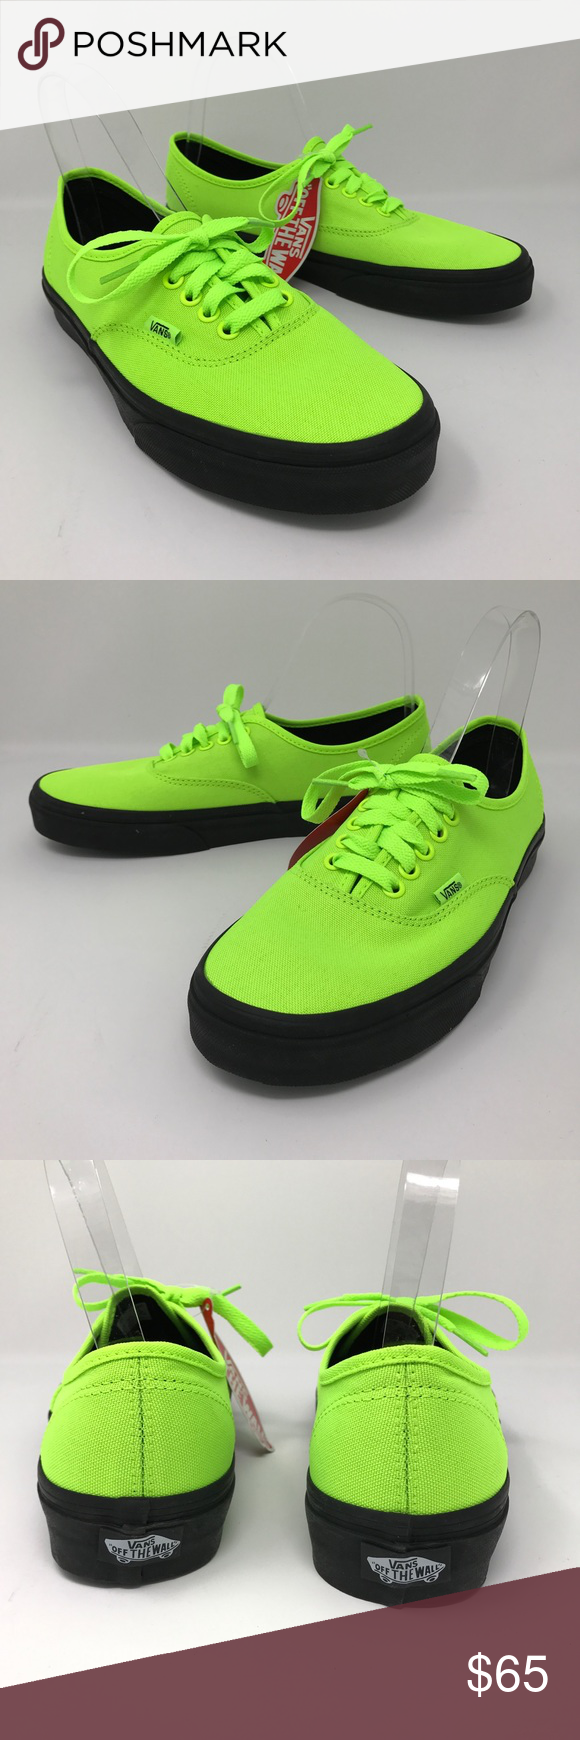 3b53bcc506 Vans Authentic Black Outsole womens Sz 9 New VANS Authentic Black Outsole  Women s Sz 9 Neon Green Shoes Size Men s 7.5 NEW Size  Men s 7.5 Women s Sz  9 ...